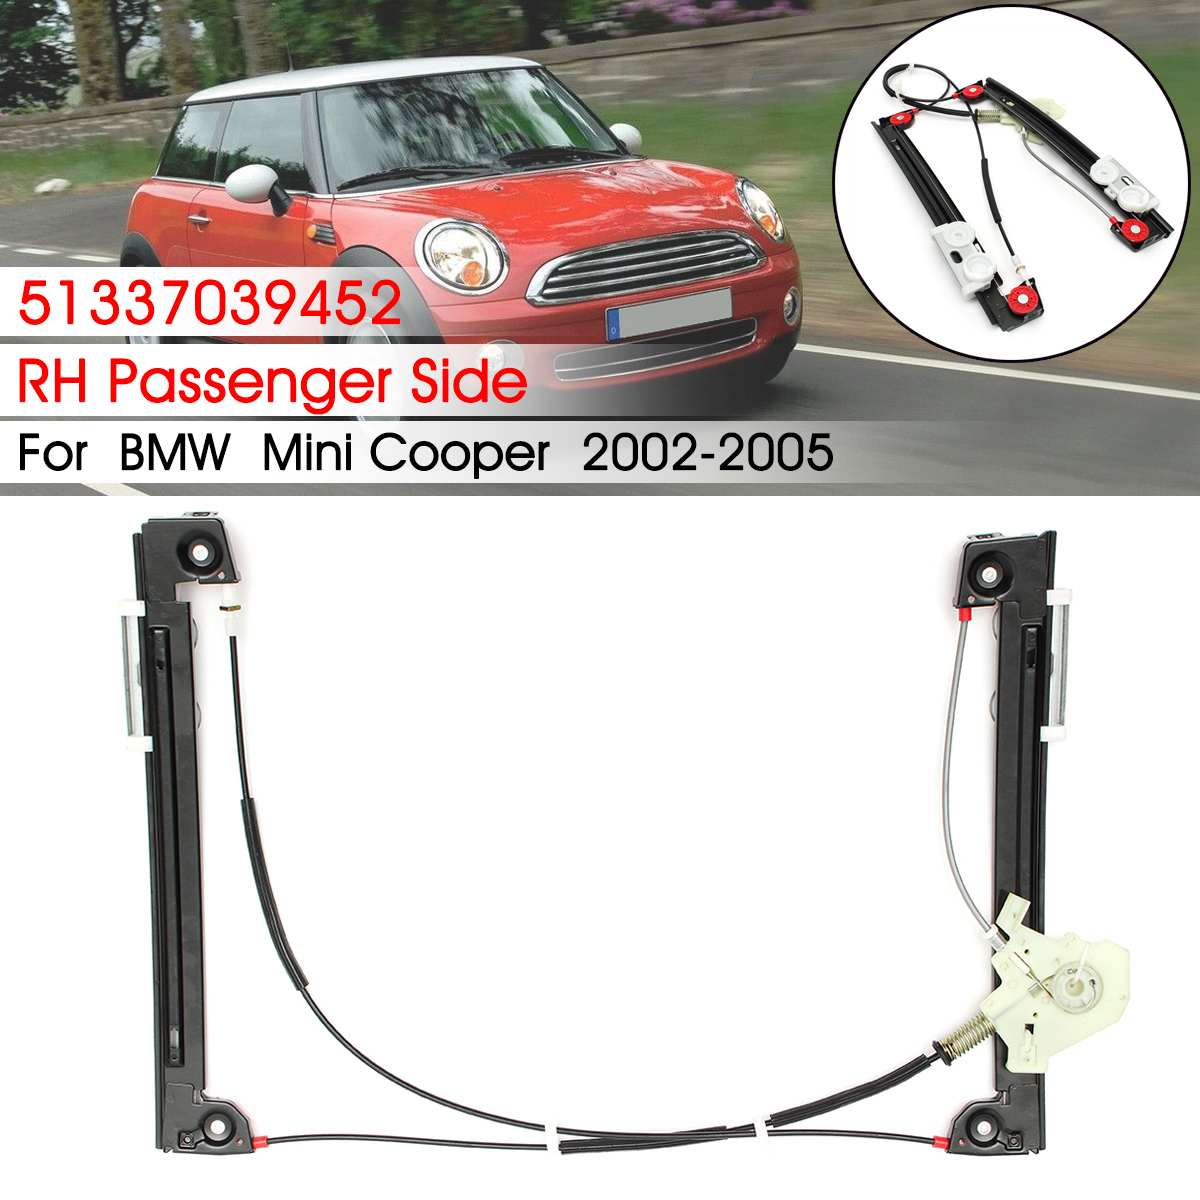 US $41 49 17% OFF|Power Window Regulator Front Right Hand Passenger Side  For BMW for Mini Cooper 2002 2003 2004 2005-in Window Motors & Parts from